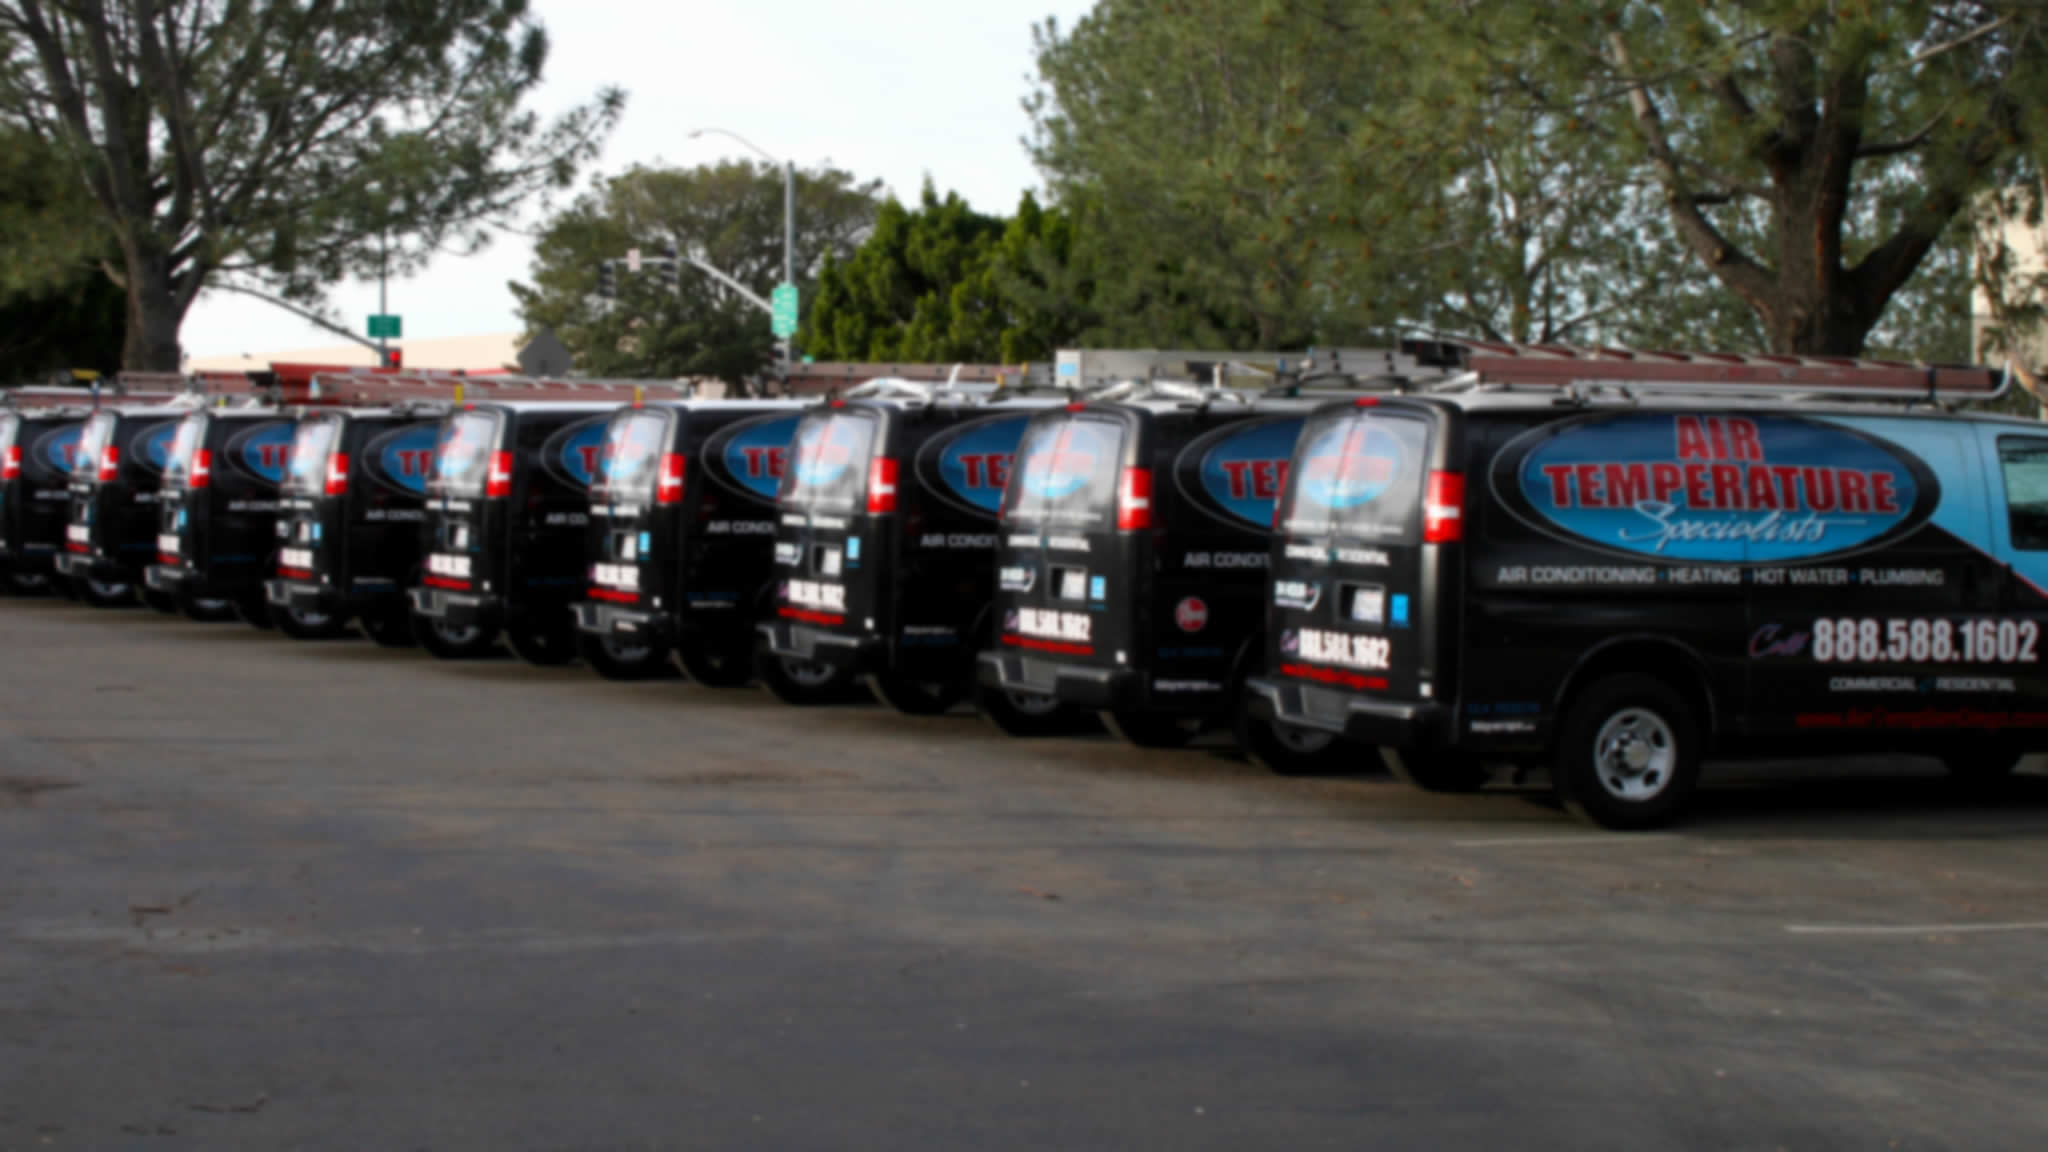 Picture of HVAC and Plumbing Repair Fleet at home in Murrieta